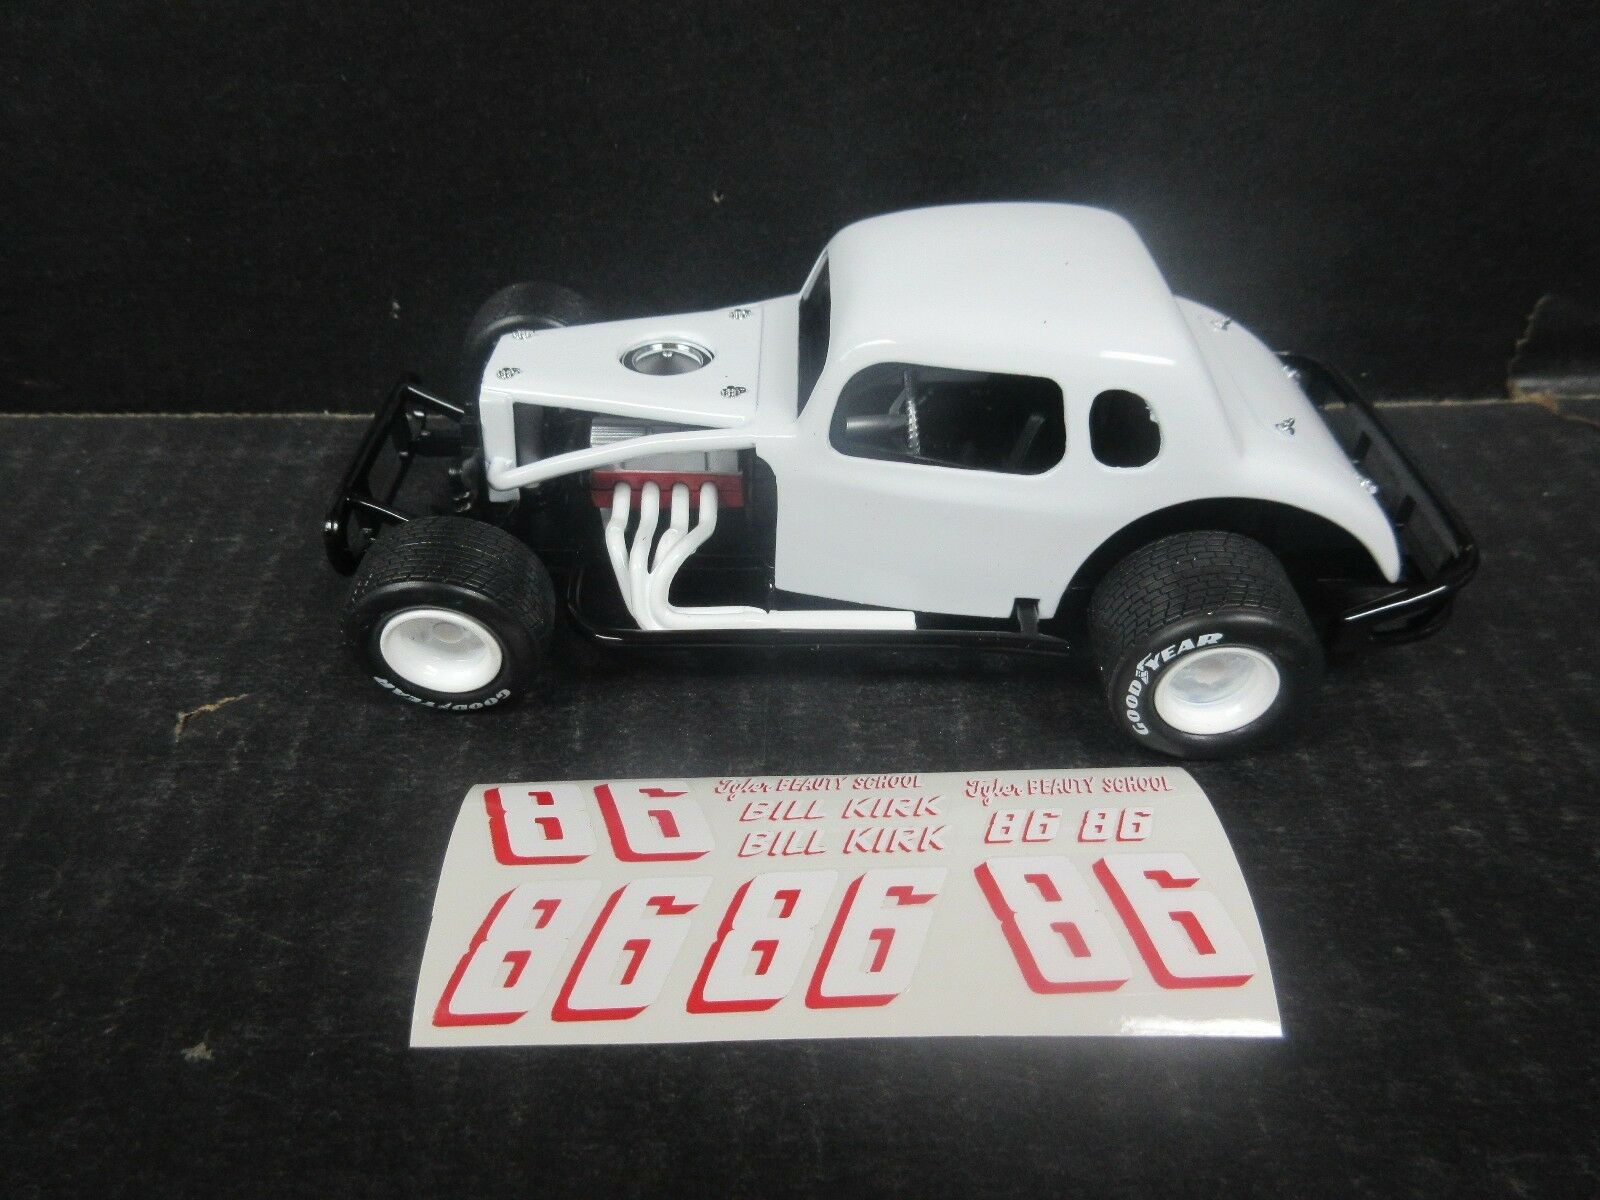 Kirk Coupe Modified 1 25th Scale Die Cast Donor Kit Bill Ndselh5026